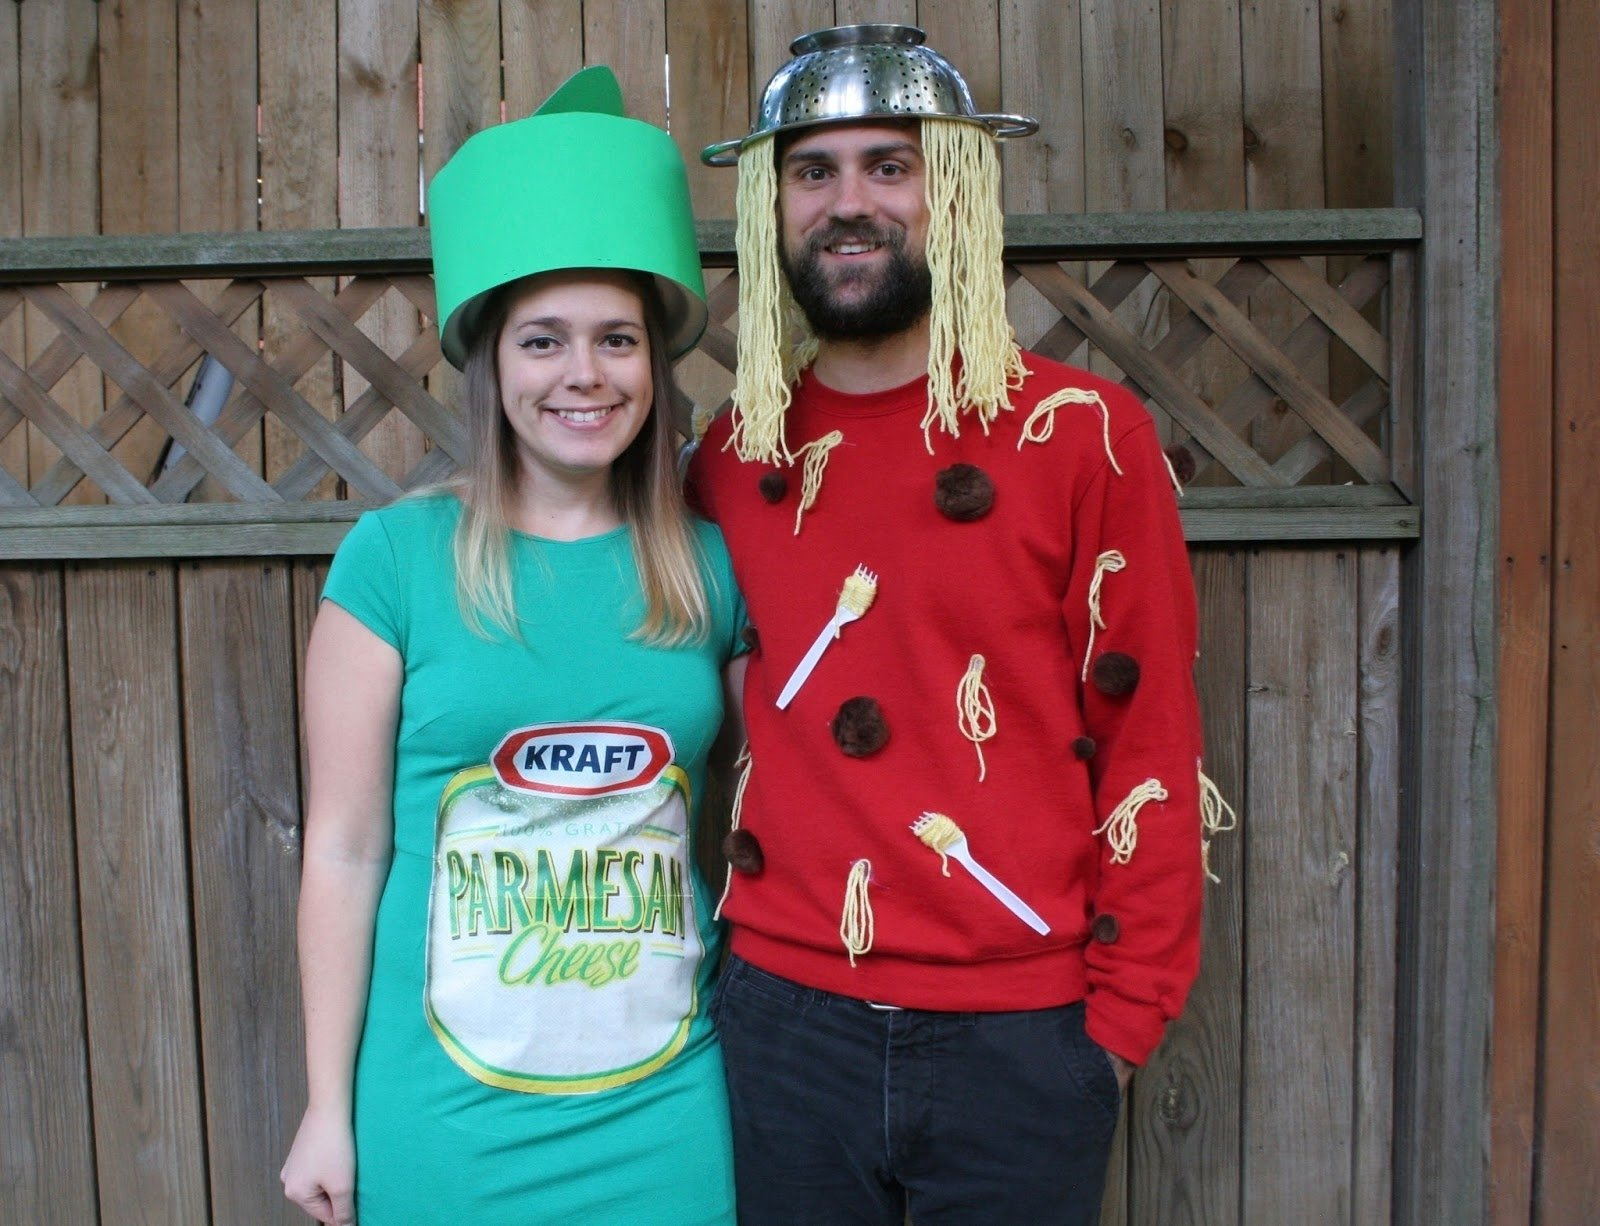 10 Amazing Great Costume Ideas For Couples our halloween costumes spaghetti parmesan cheese the surznick 11 2020